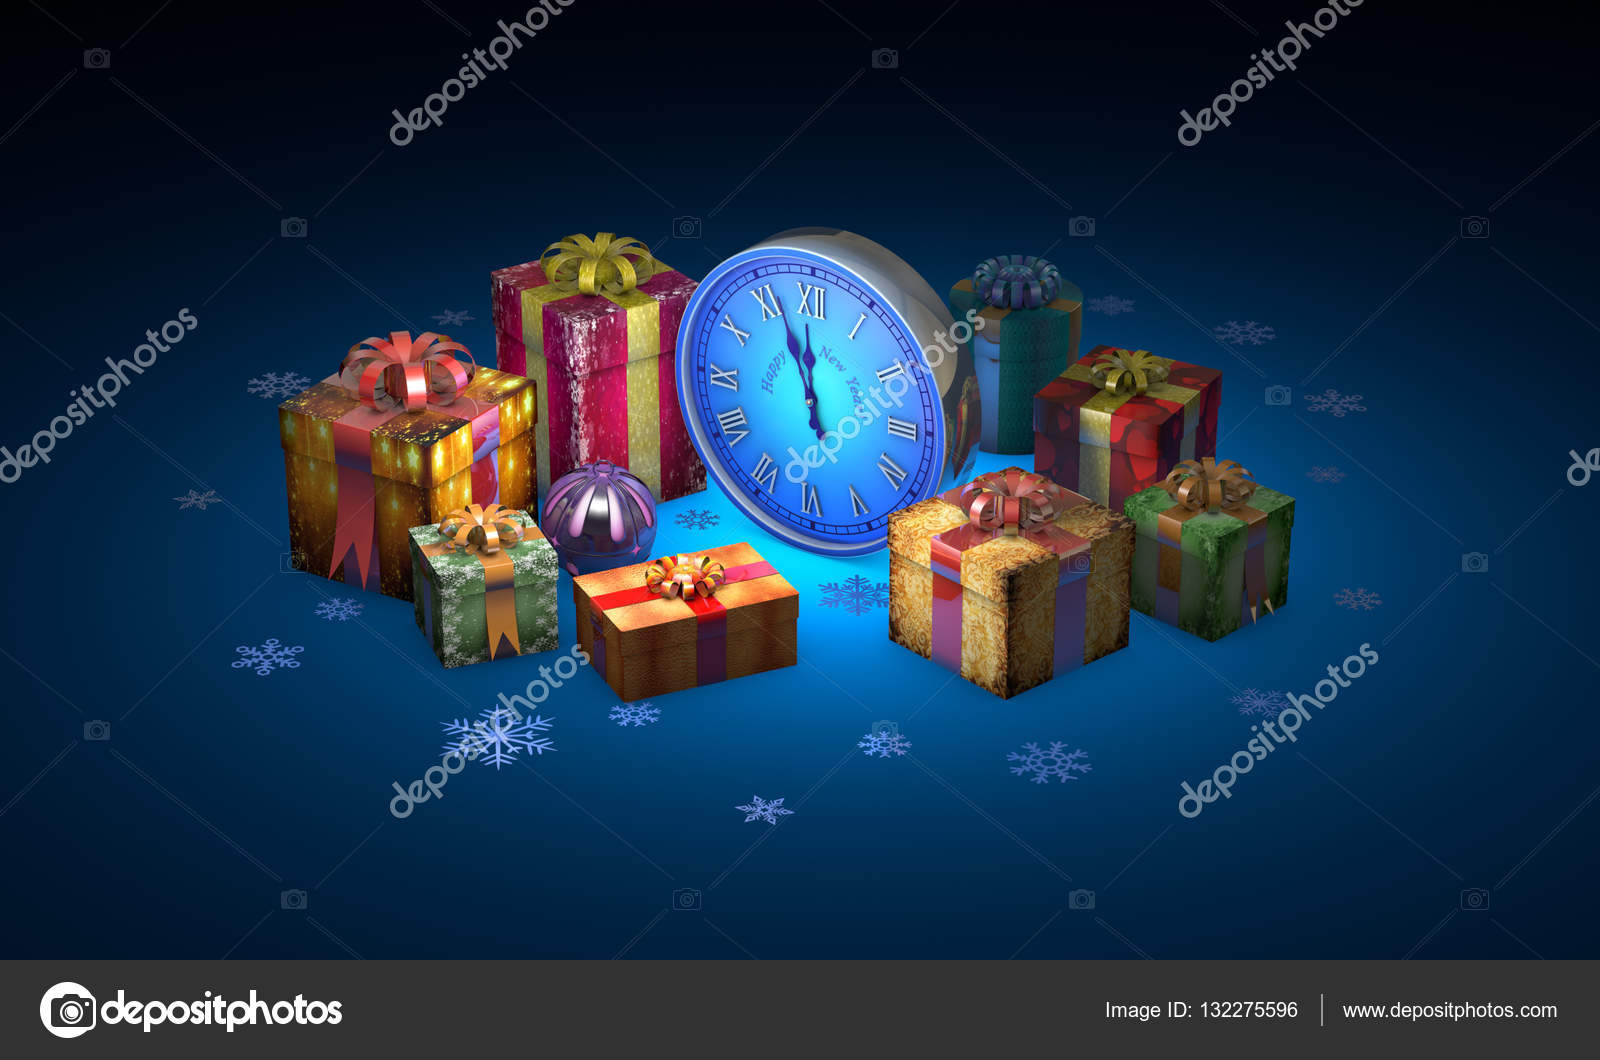 Beautiful Christmas Gifts Clock Available In High Resolution And Several Sizes To Fit The Needs Of Your Project 3D Illustration Rendering